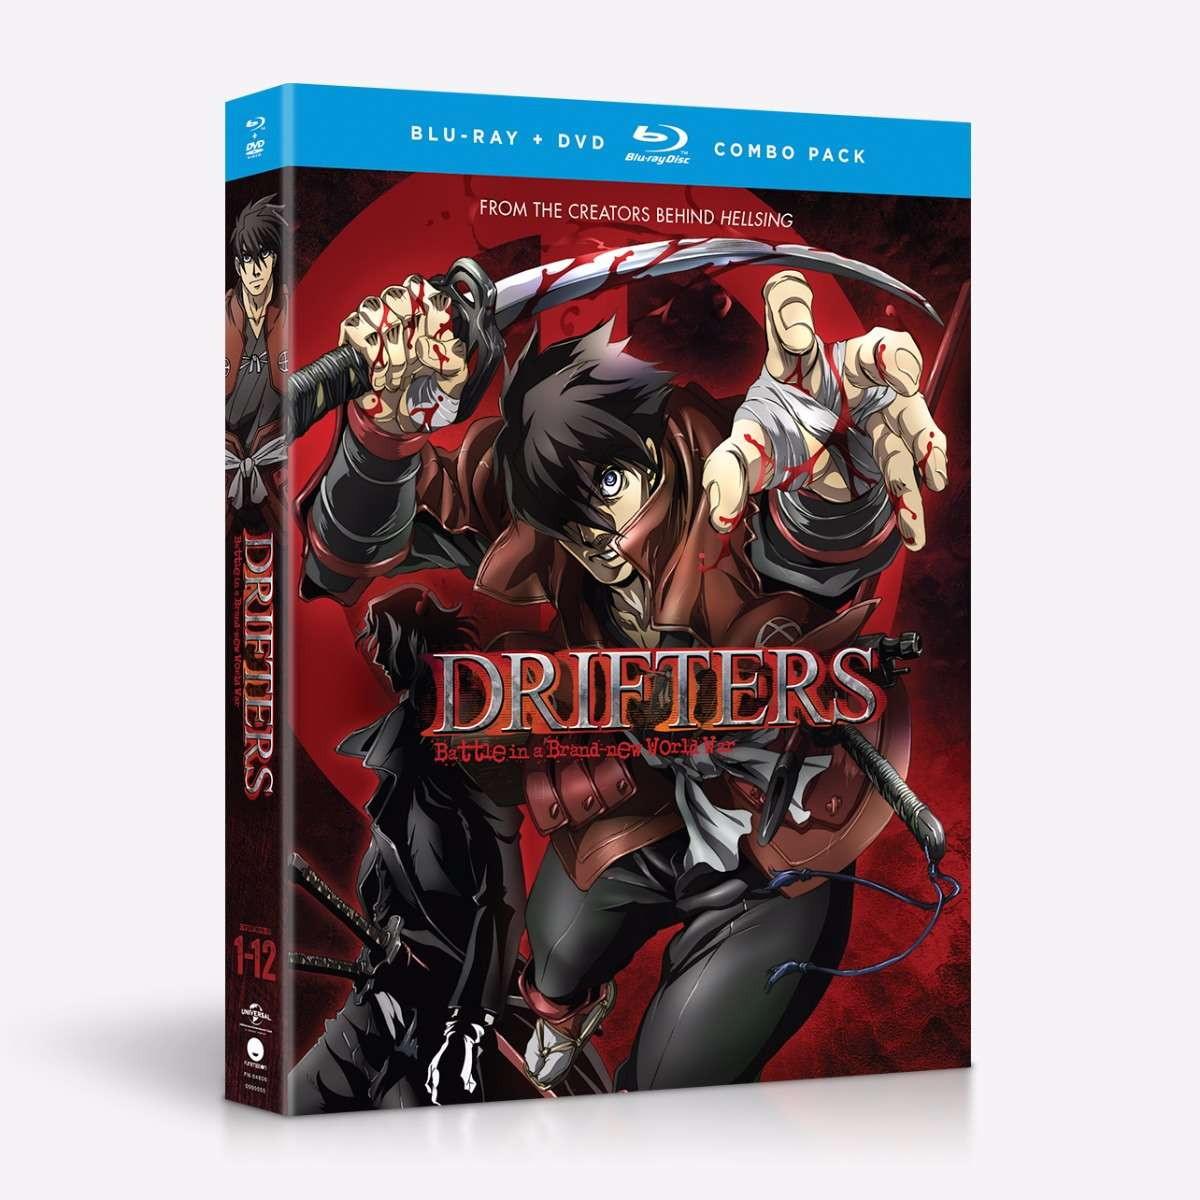 Drifters Complete Series Blu-ray/DVD 704400046063